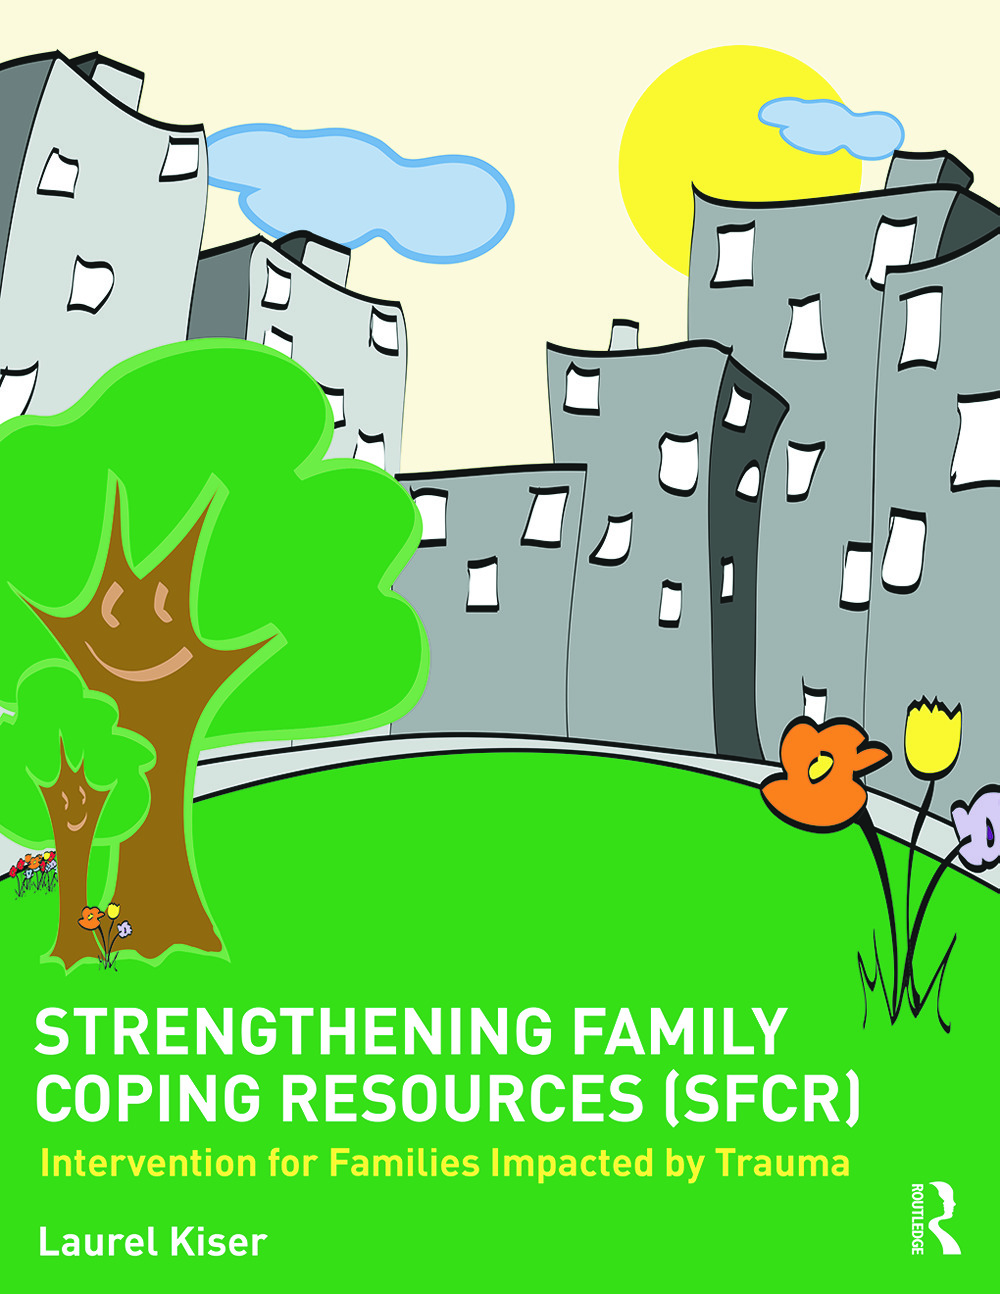 Strengthening Family Coping Resources: Intervention for Families Impacted by Trauma book cover